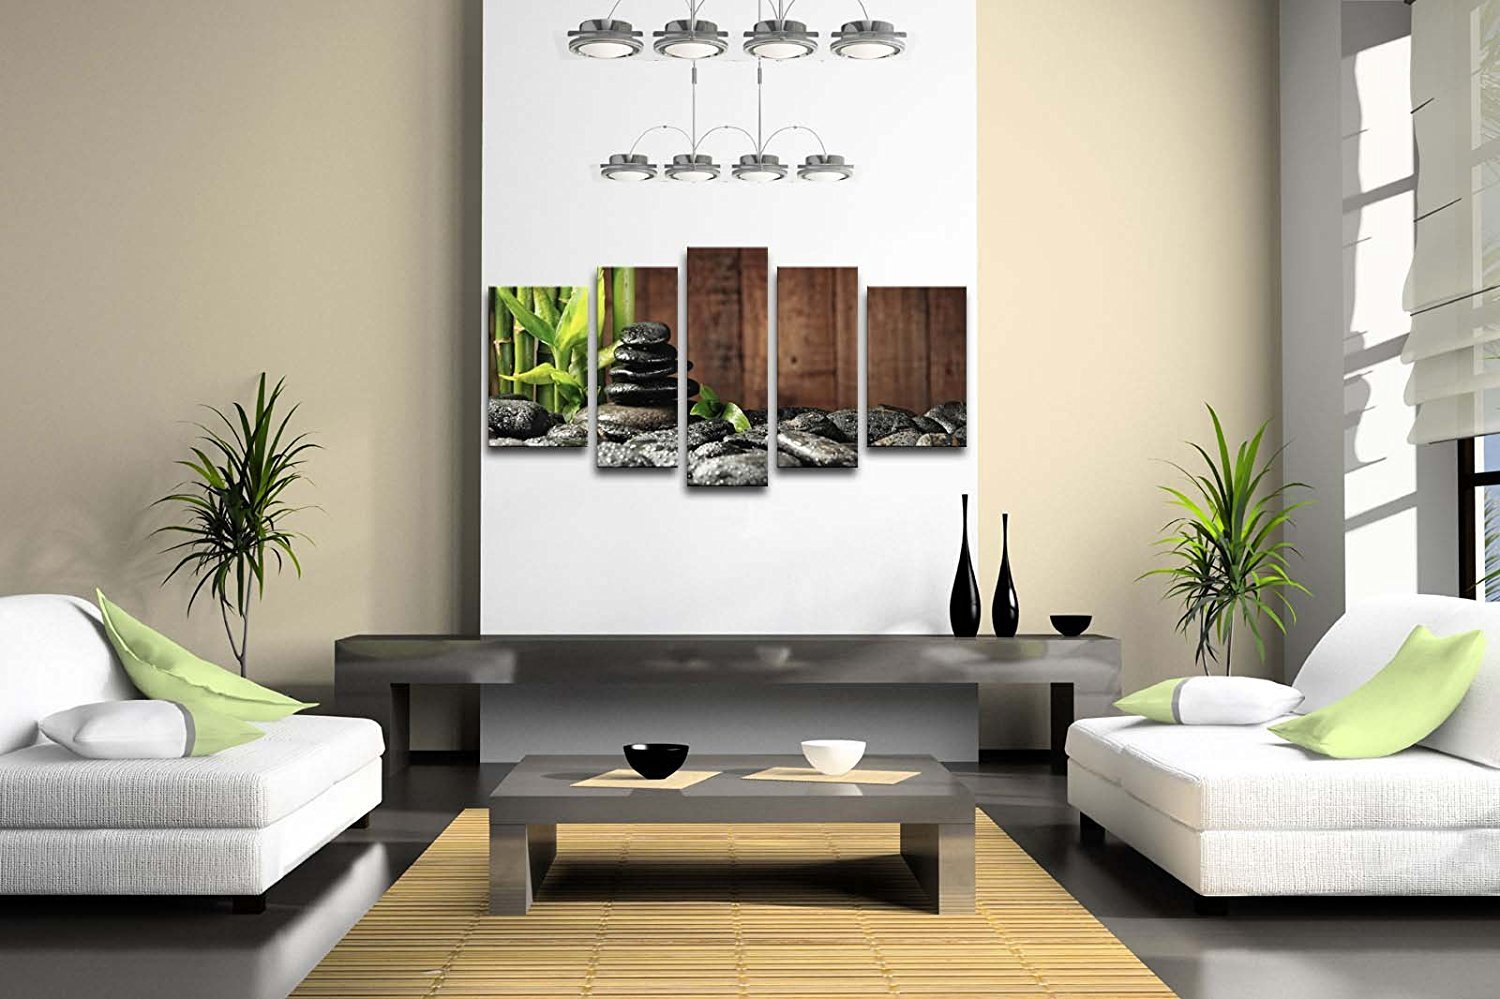 5 Panel Wall Art Green Spa Concept Bamboo Grove And Black Zen Stones On The Old Wooden Background Painting Pictures Print On Canvas Botanical The Picture For Home Modern Decoration piece